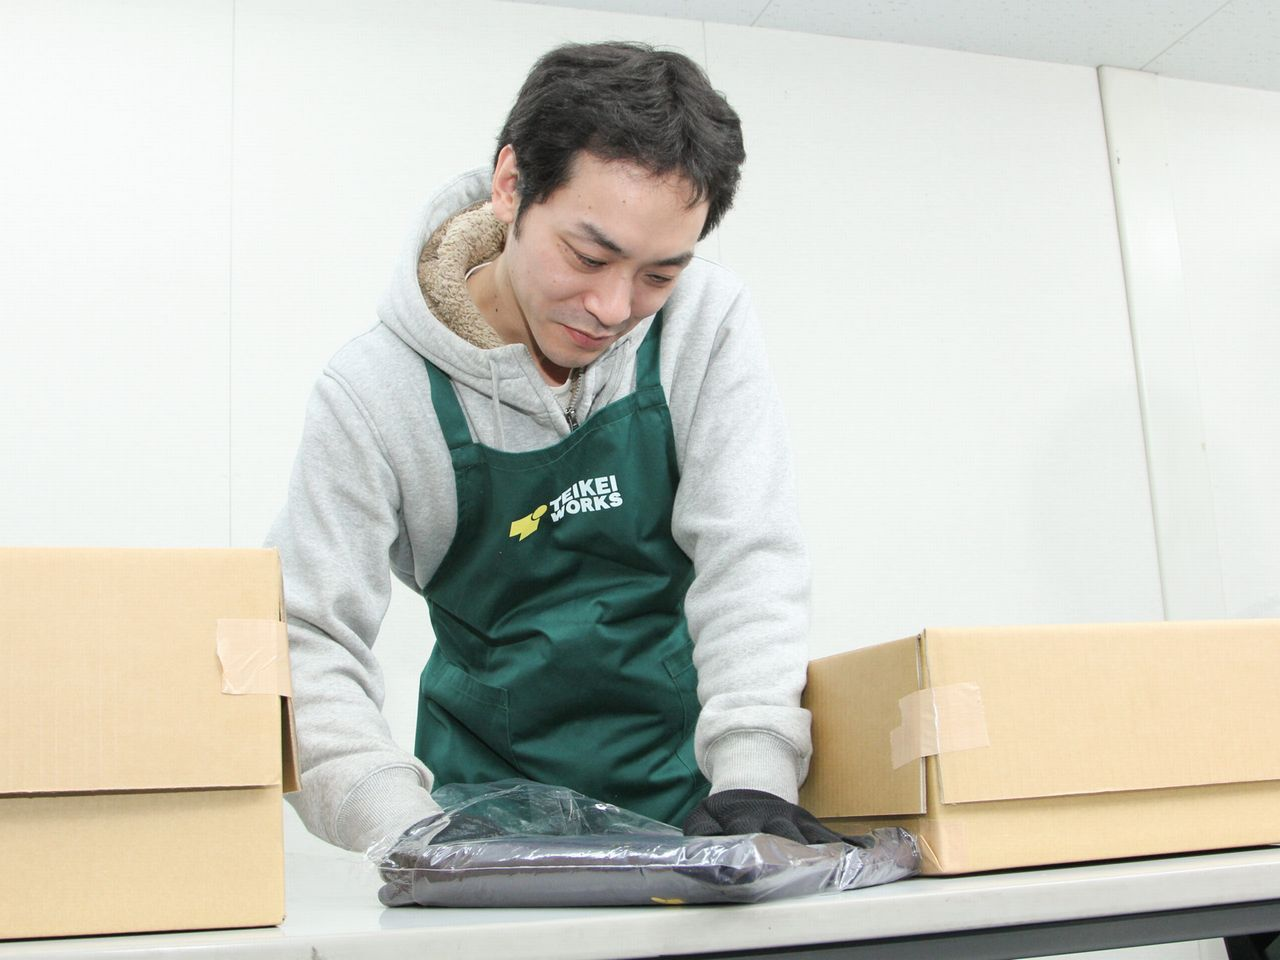 teikeiworksTOKYO 浦安支店のアルバイト情報